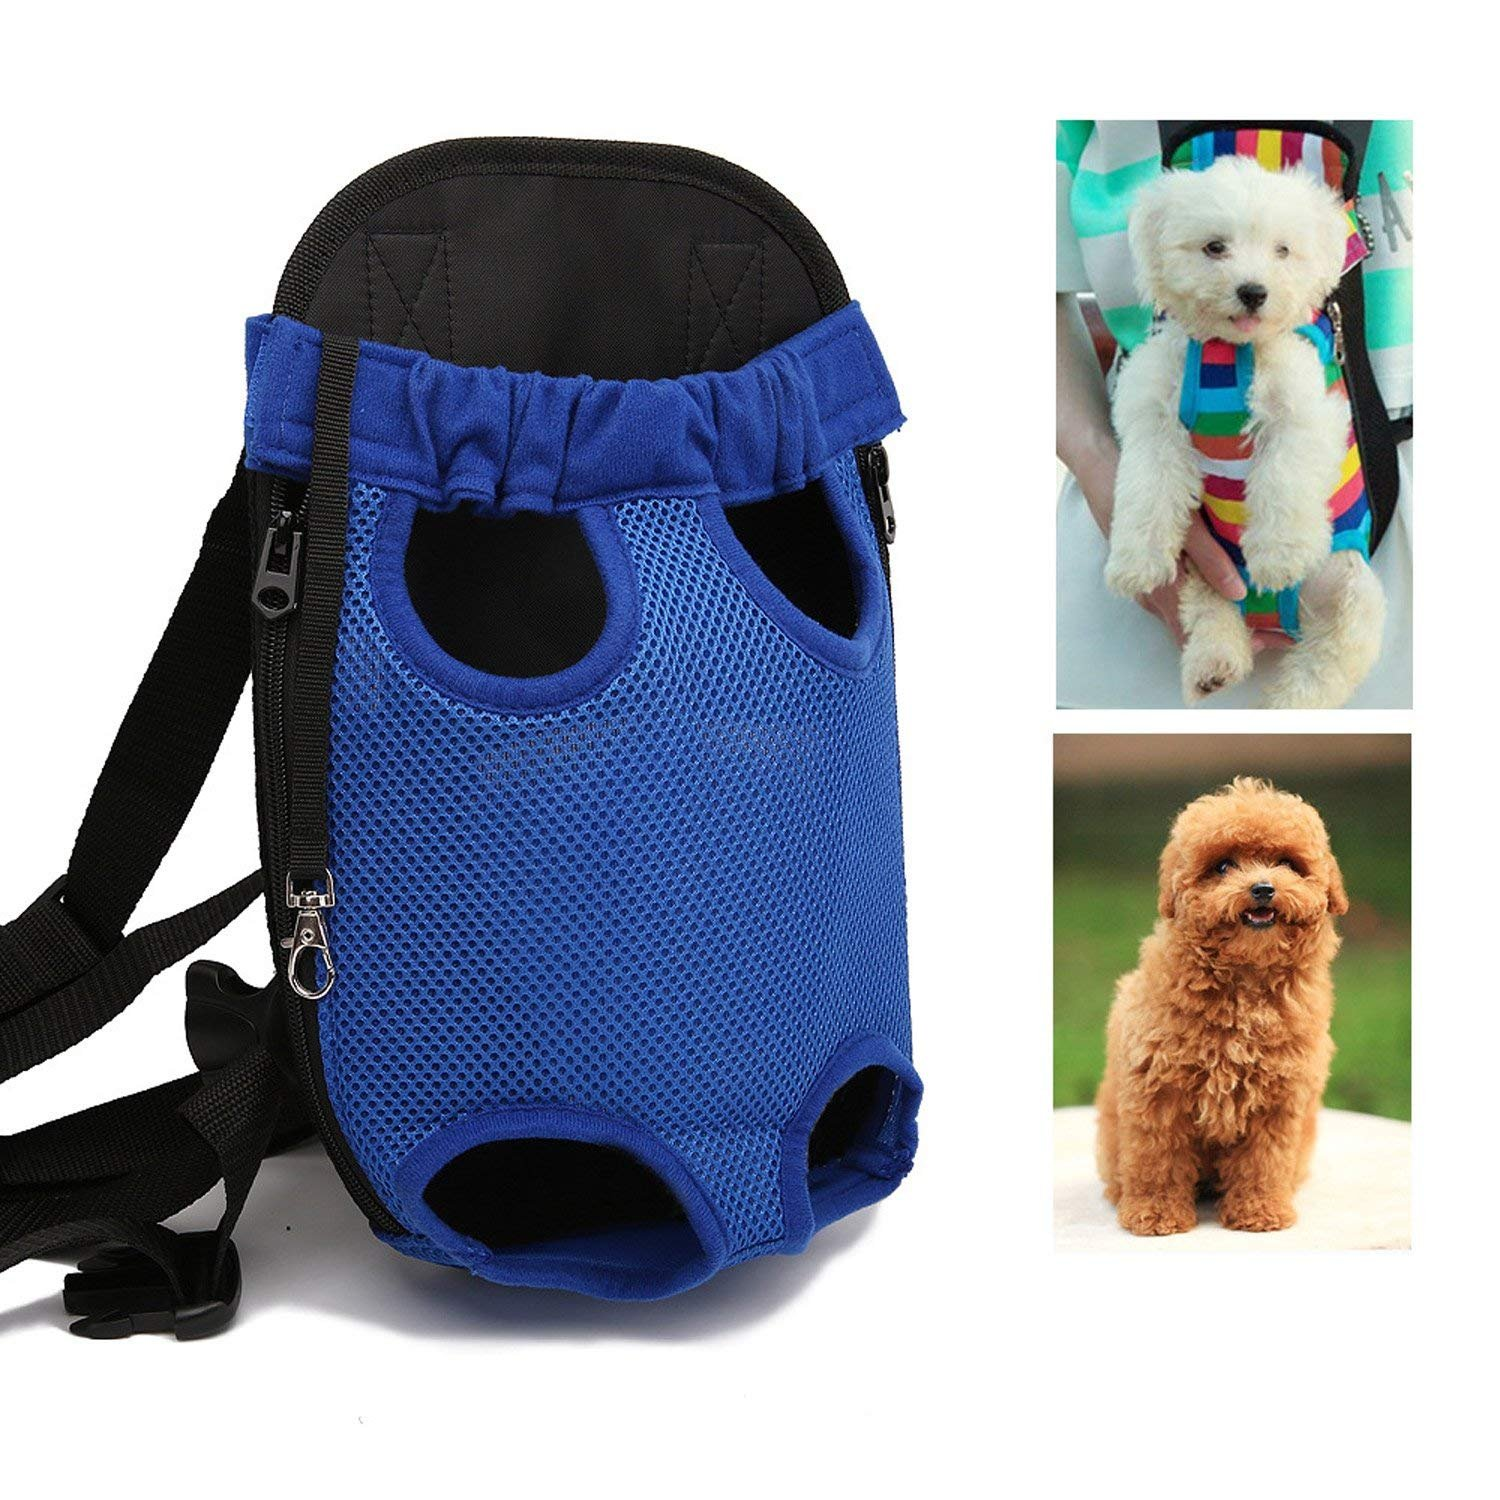 LEMONPET Dog Front Carrier Bag Adjustable, Legs Out, Pet Cat Dog Carrier Backpack for Walking, Traveling, Hiking, Camping, Bike and Motorcycle (Medium, Blue)